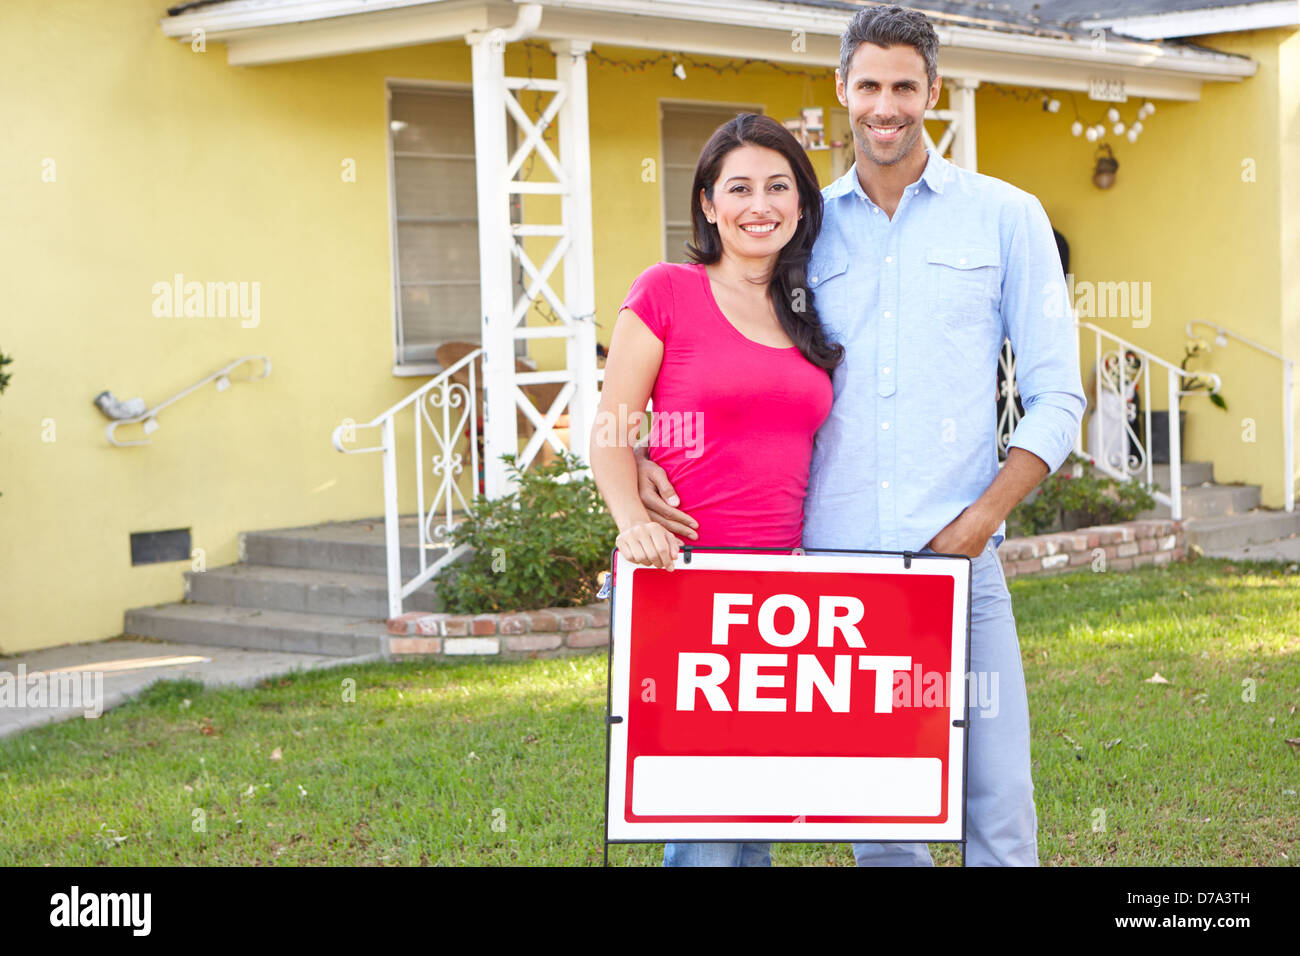 Couple Standing By For Rent Sign Outside Home - Stock Image